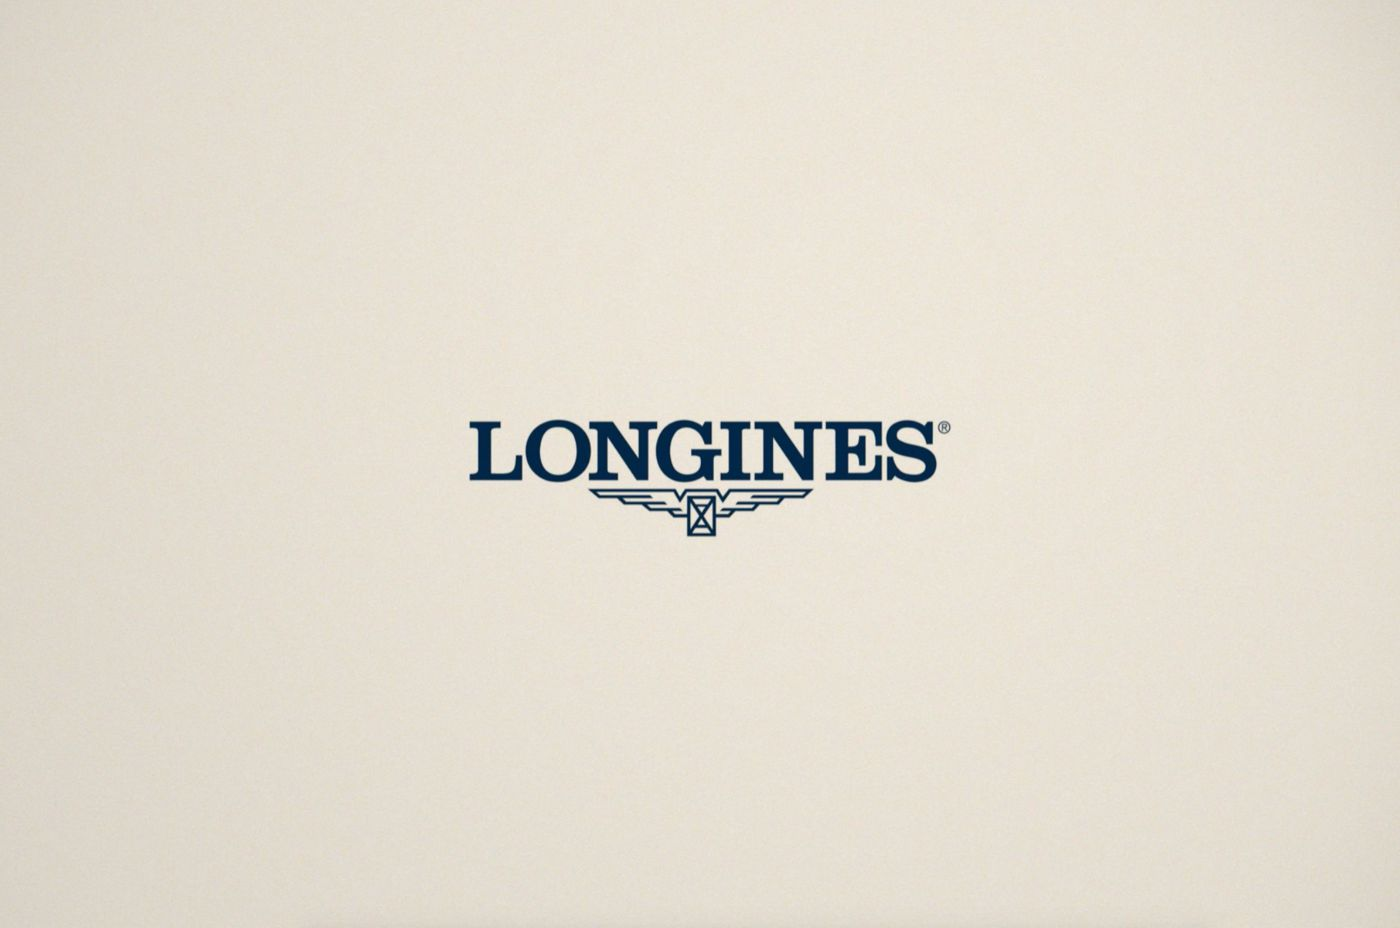 Longines Alpine Skiing Event: LONGINES FUTURE SKI CHAMPIONS - THE BEST YOUNG FEMALE SKIERS 31